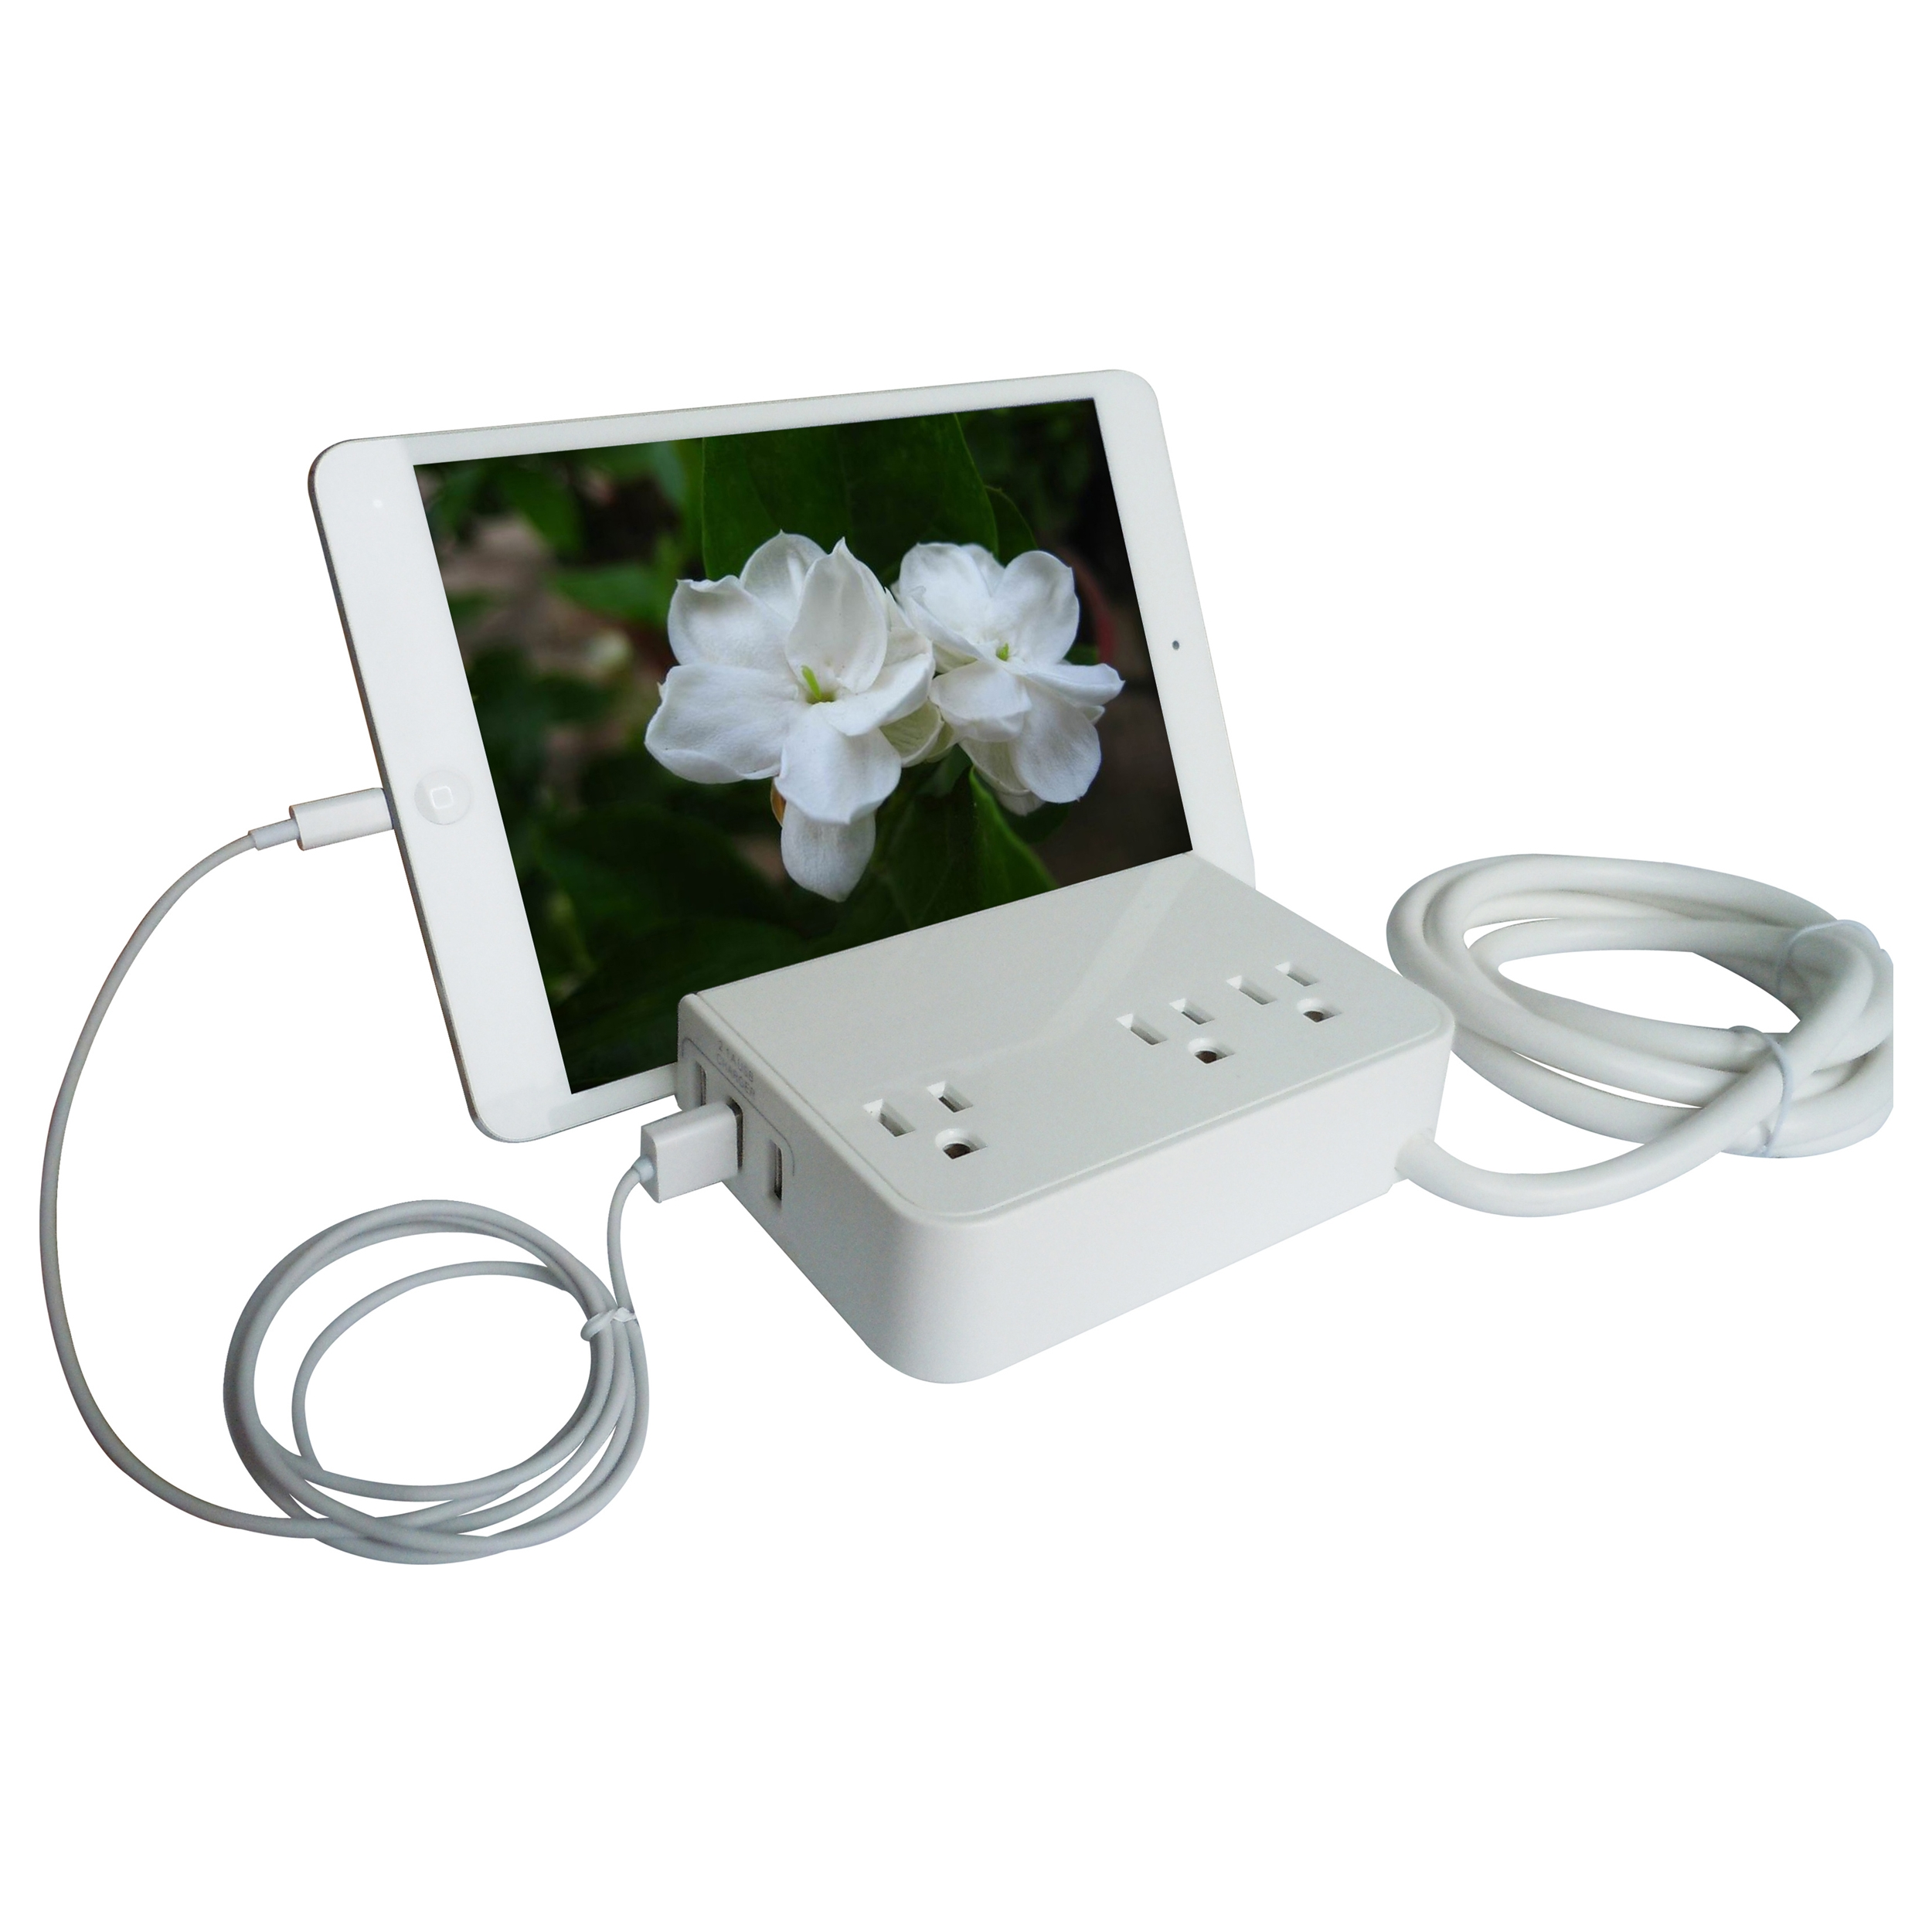 RND Desktop Charging Station with 3 AC Plugs and 3 USB ports Surge Protector for iPhone, Samsung Galaxy, and more, with a slot for iPads and Tablets.